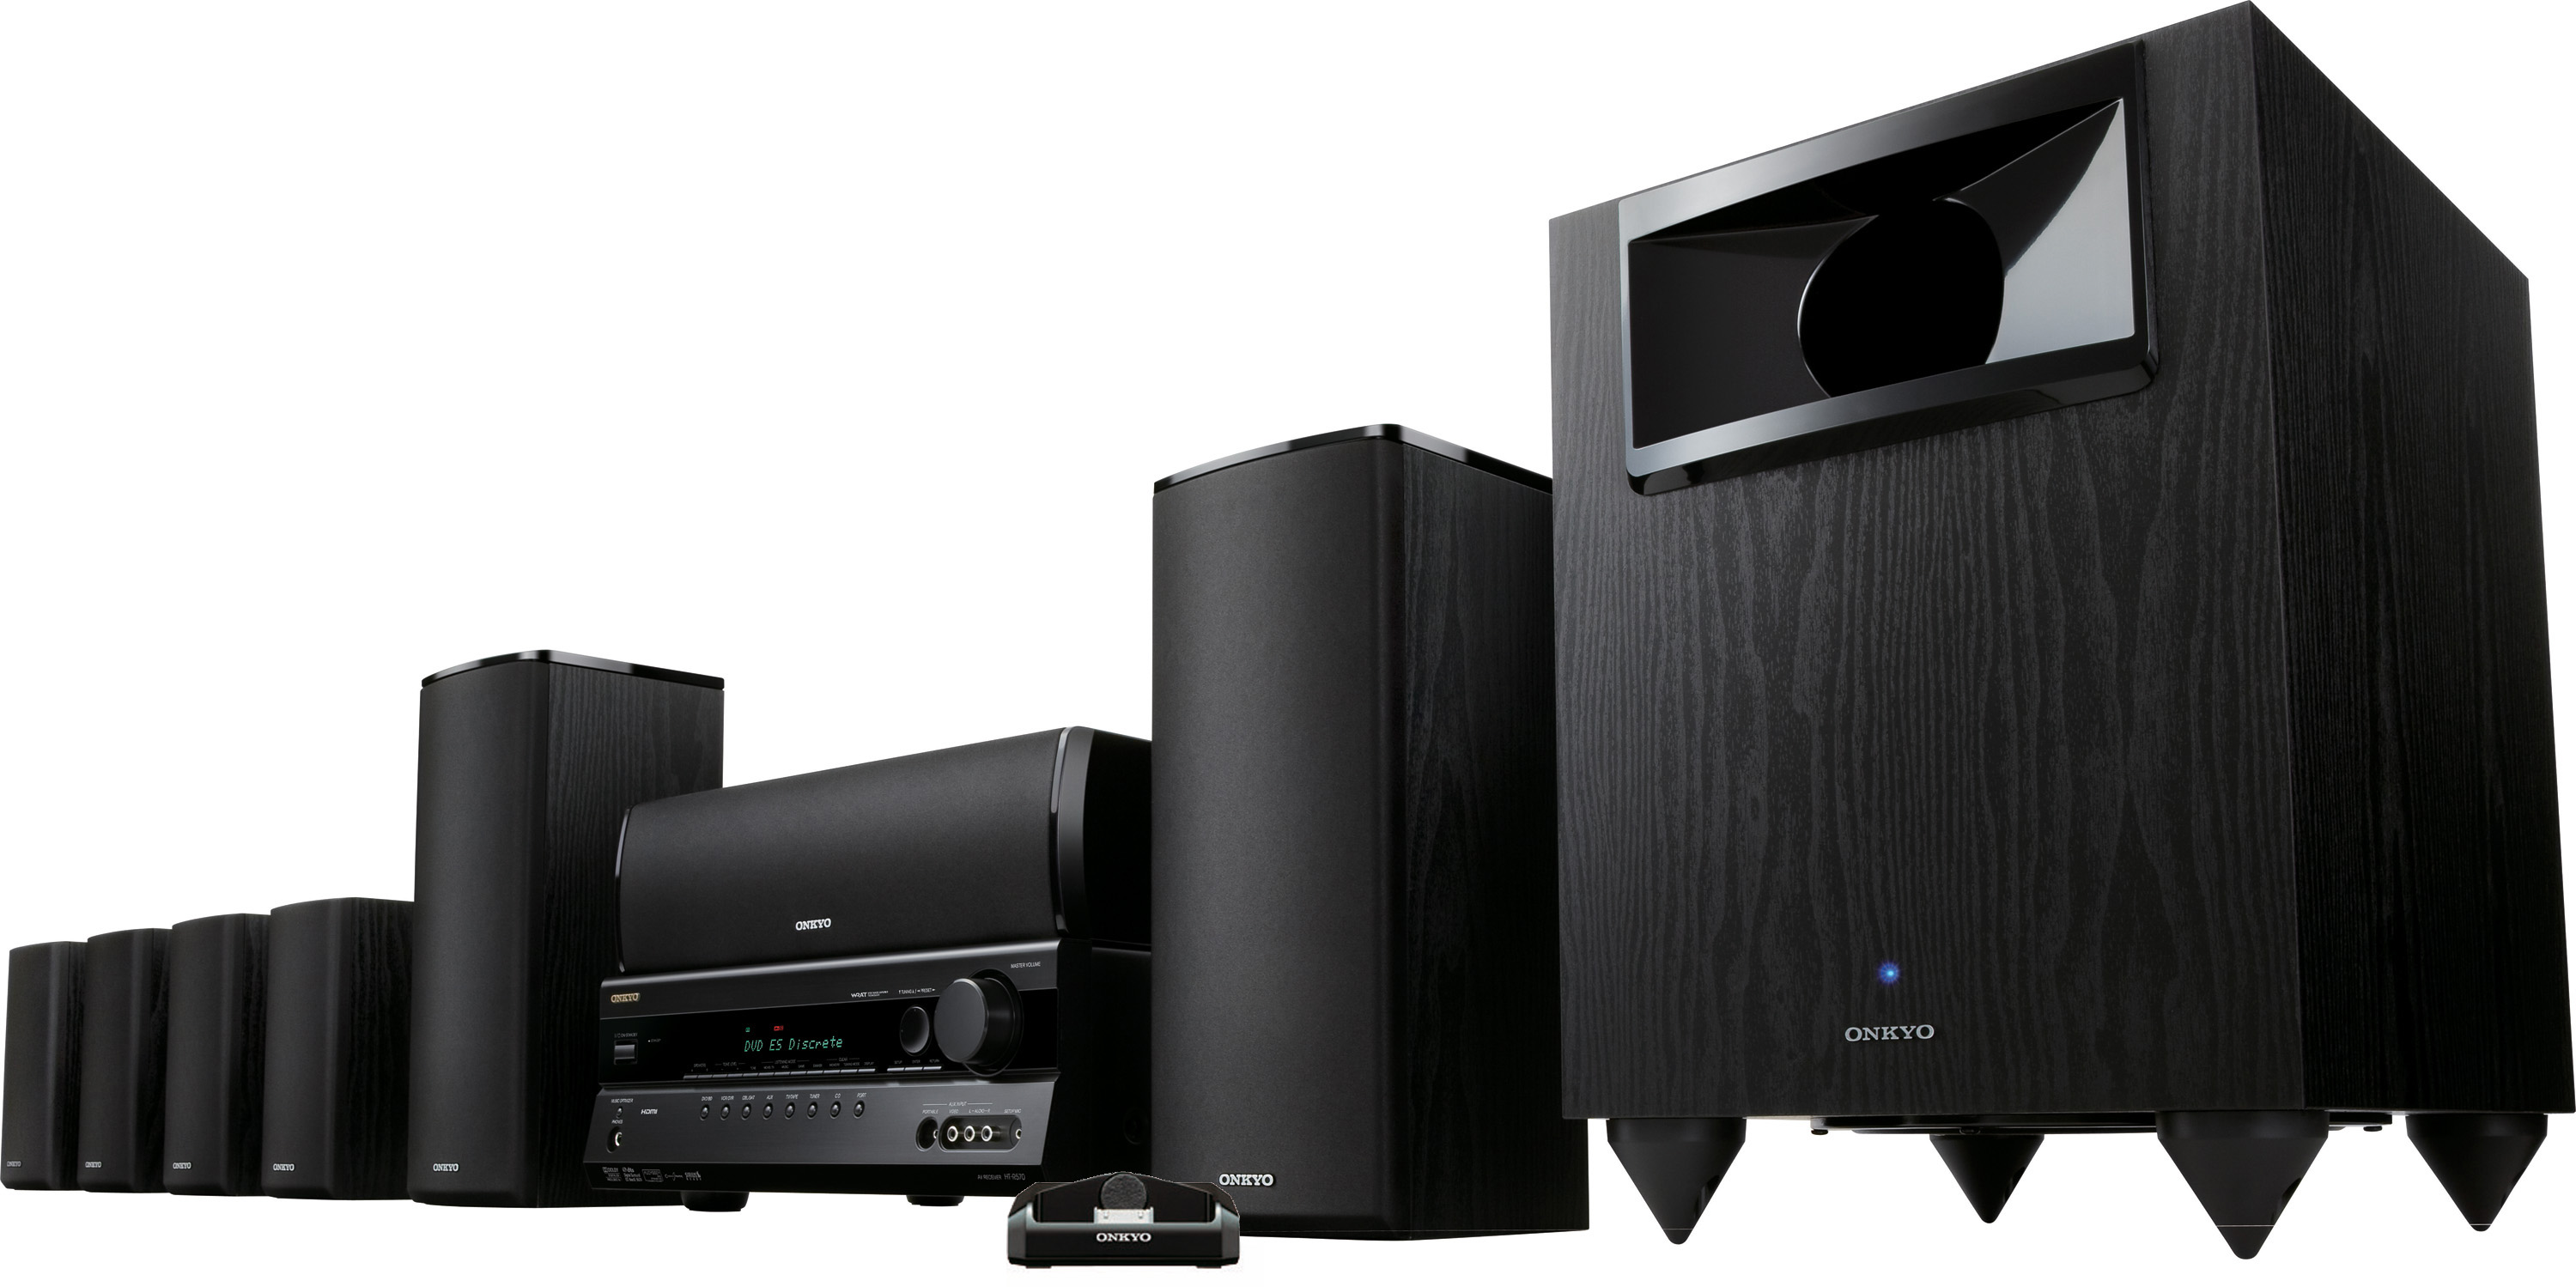 Onkyo intros a pair of entry-level HTiB, HT-S3200 and HT